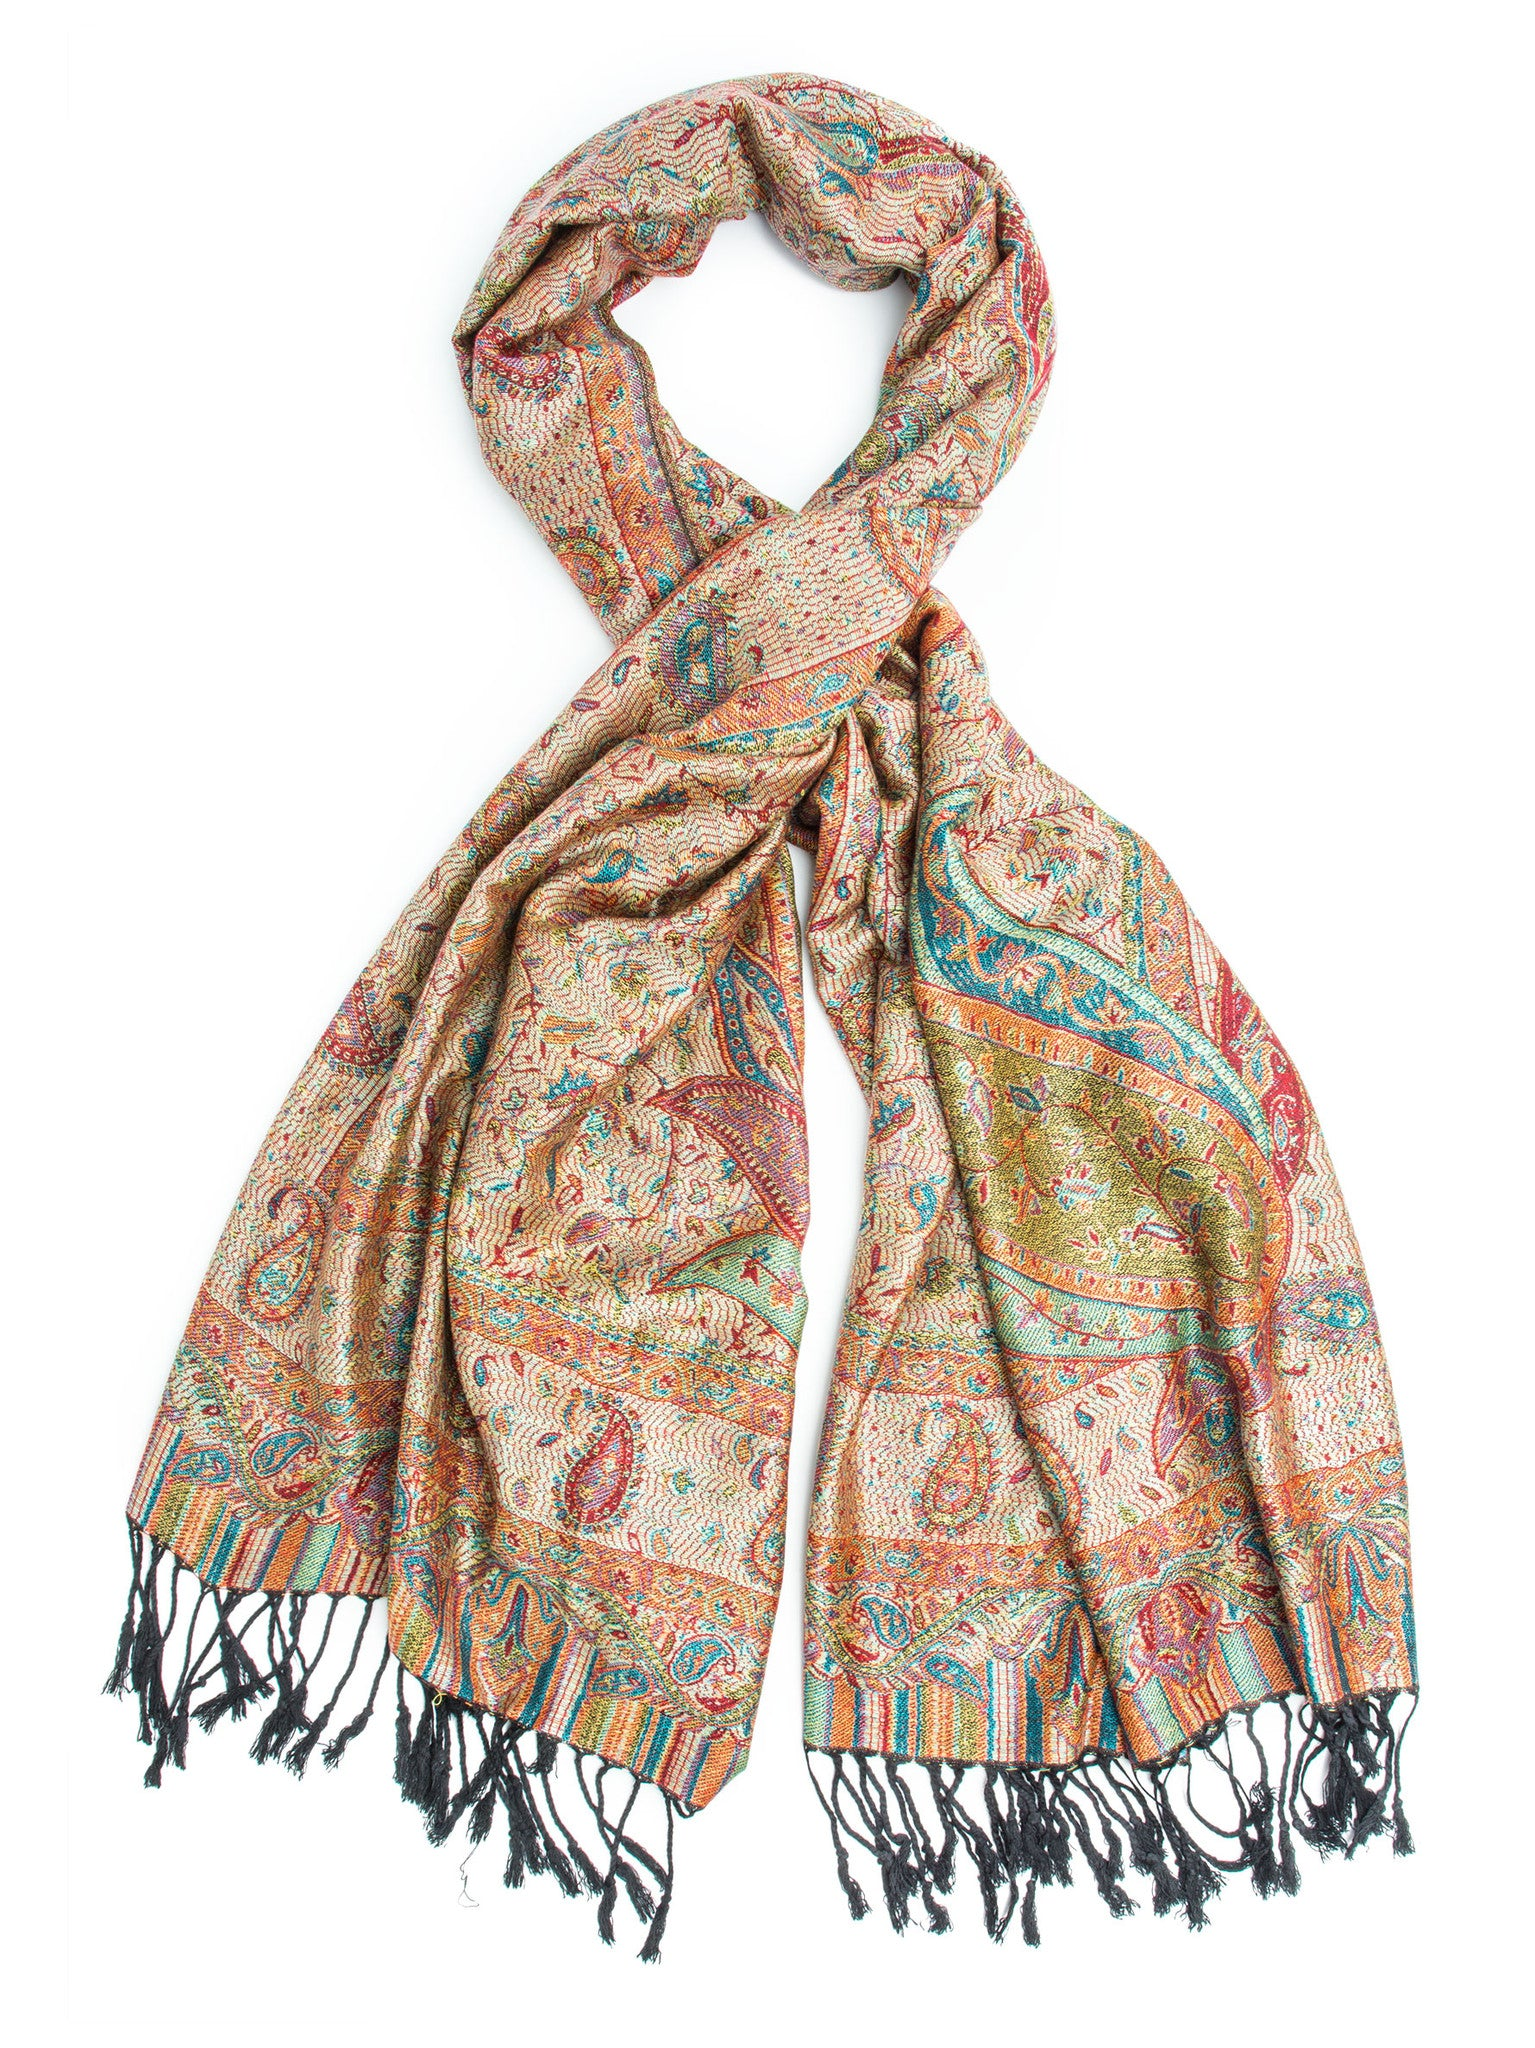 Scarves - Tiaja Scarf, Pashmina Indian Paisley Traditional Jacquard Scarf - hand made in India -() Bohomonde  - 4